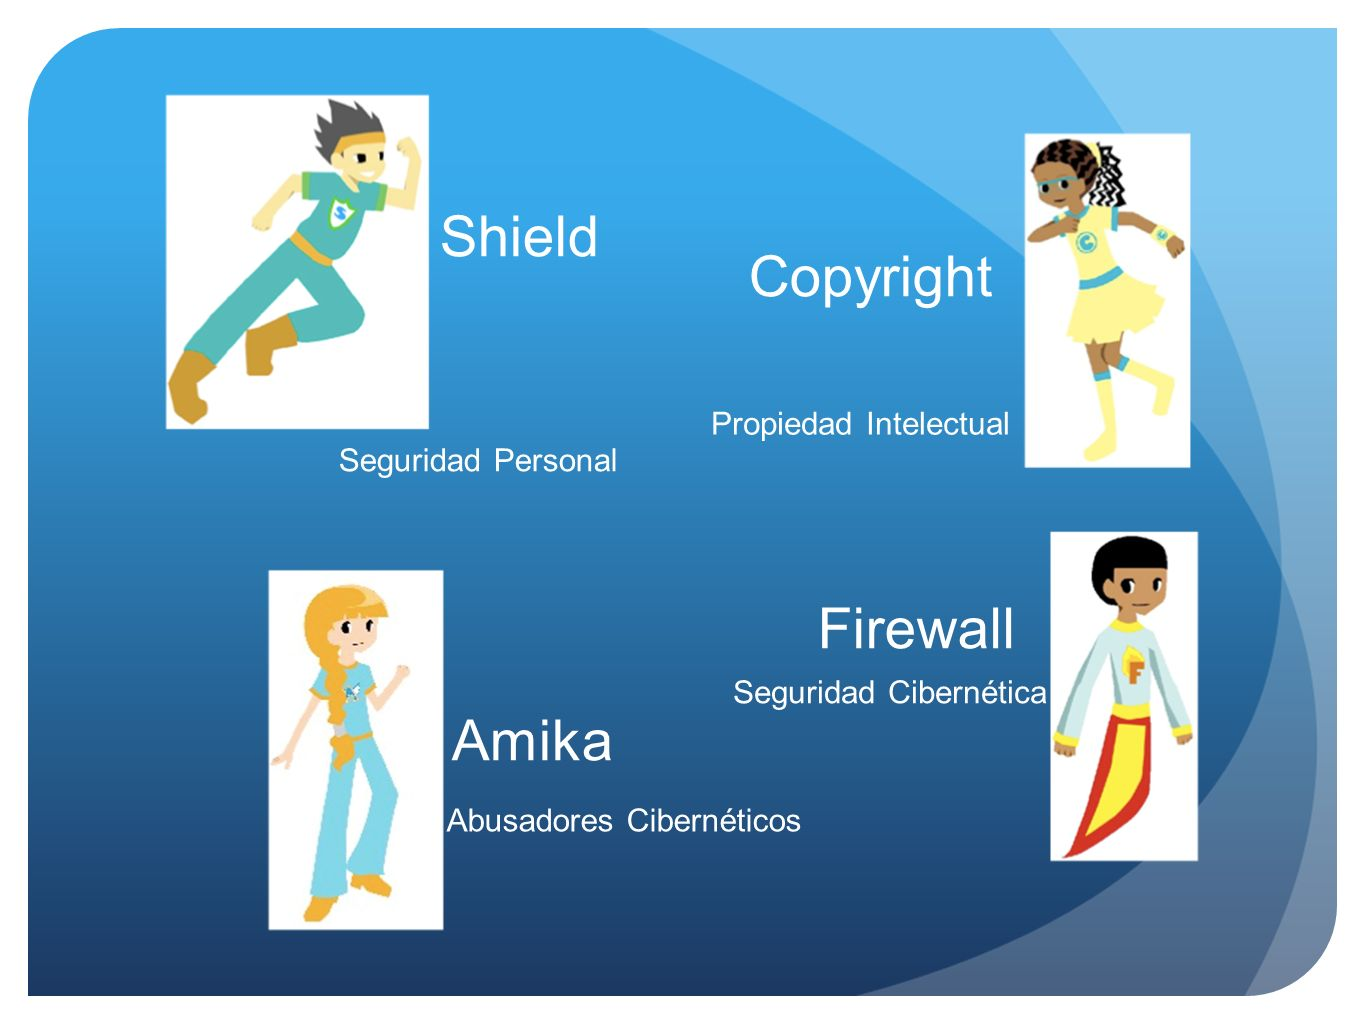 Shield Copyright Firewall Amika Propiedad Intelectual